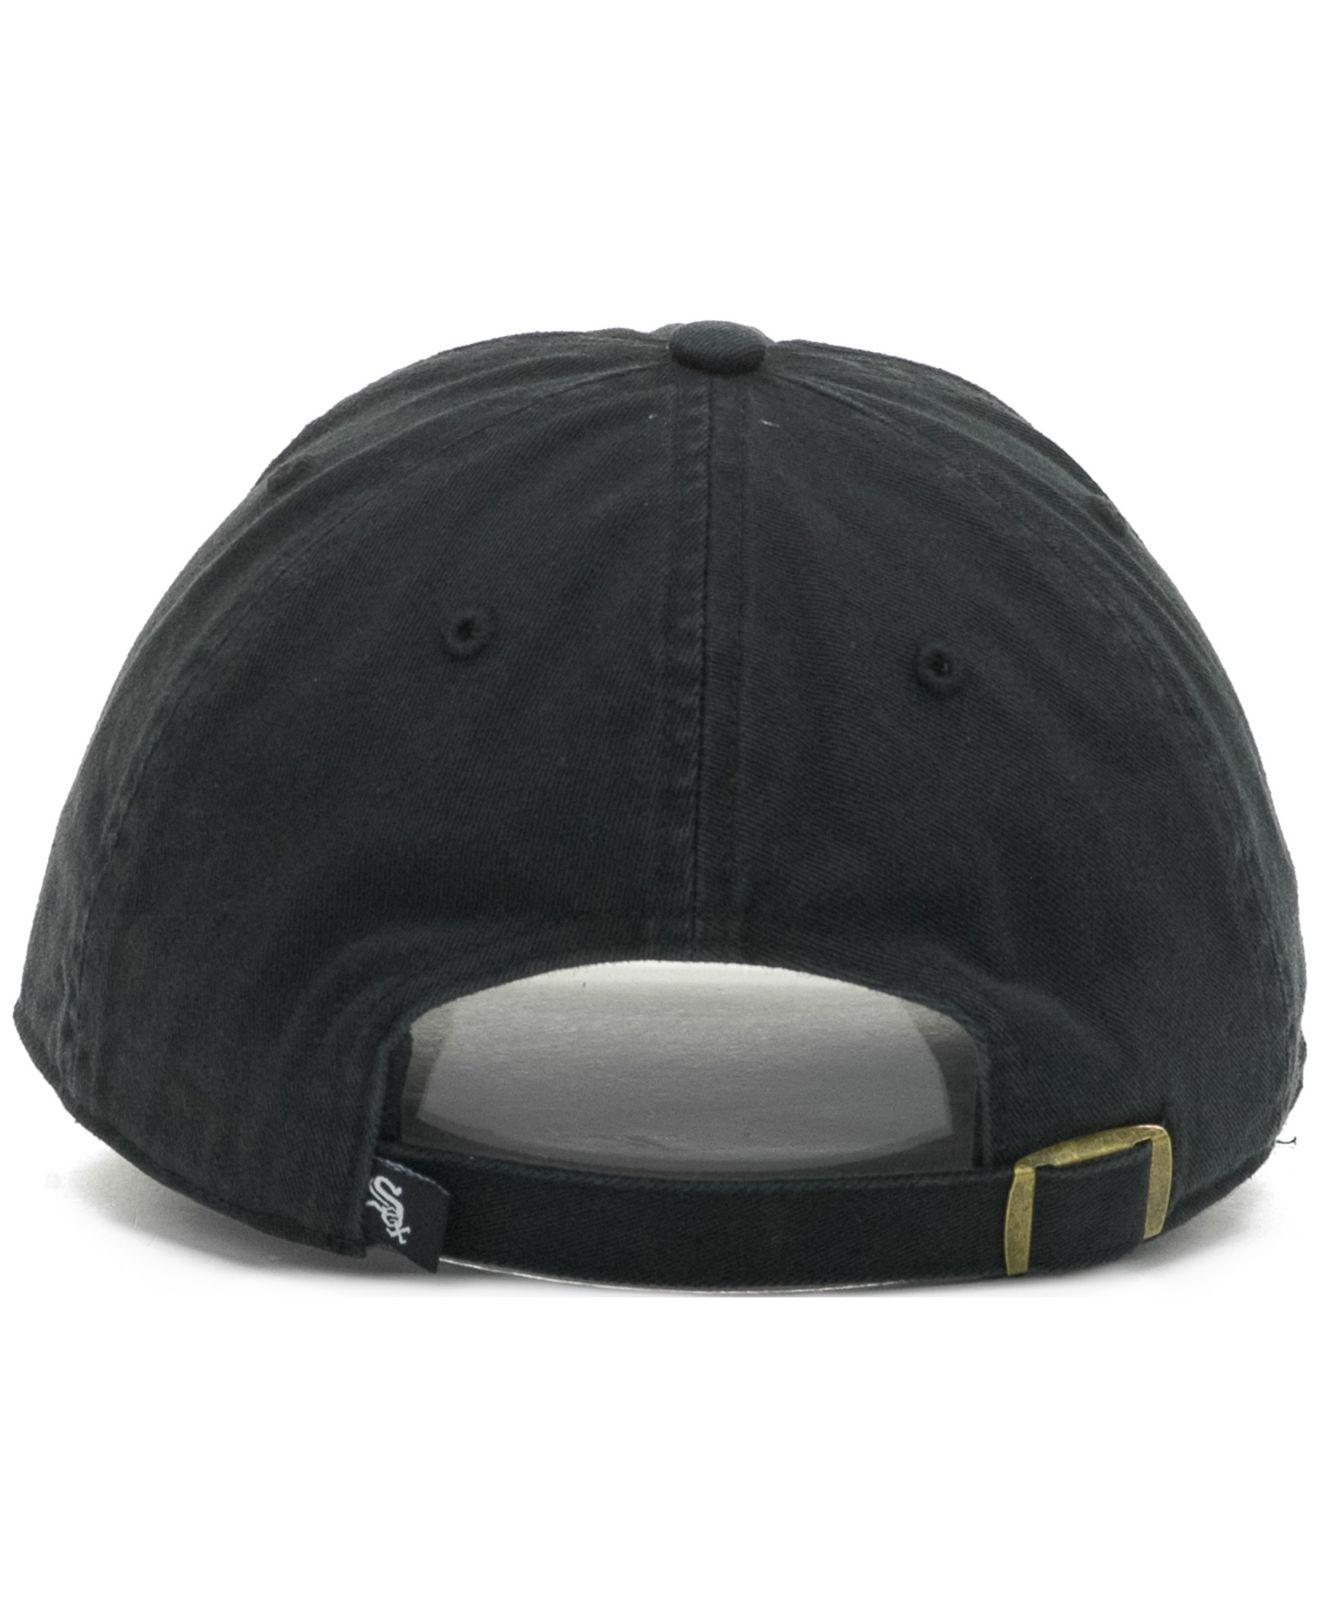 premium selection 857ba 47174 ... ireland lyst 47 brand chicago white sox clean up hat in black for men  d3158 64821